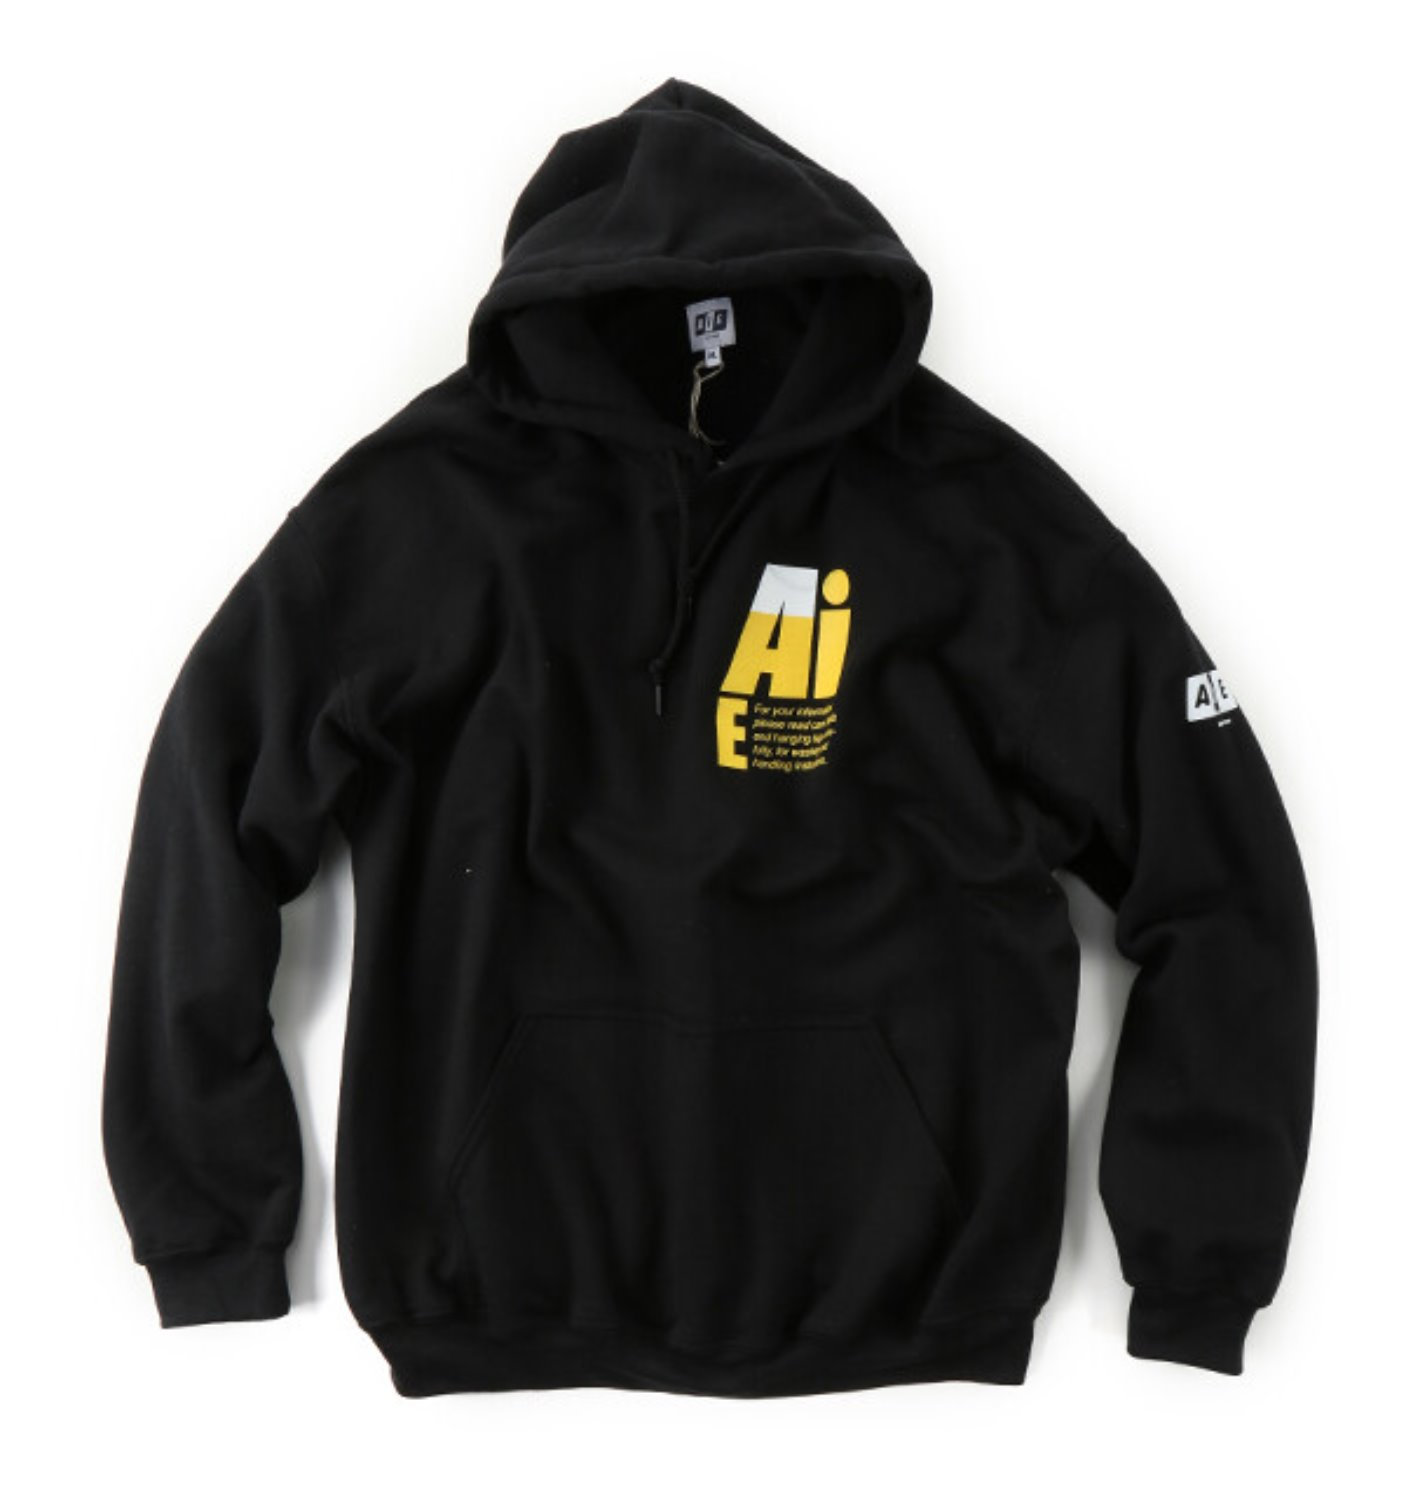 SMALL AiE LOGO PRINTED HOODY BLACK